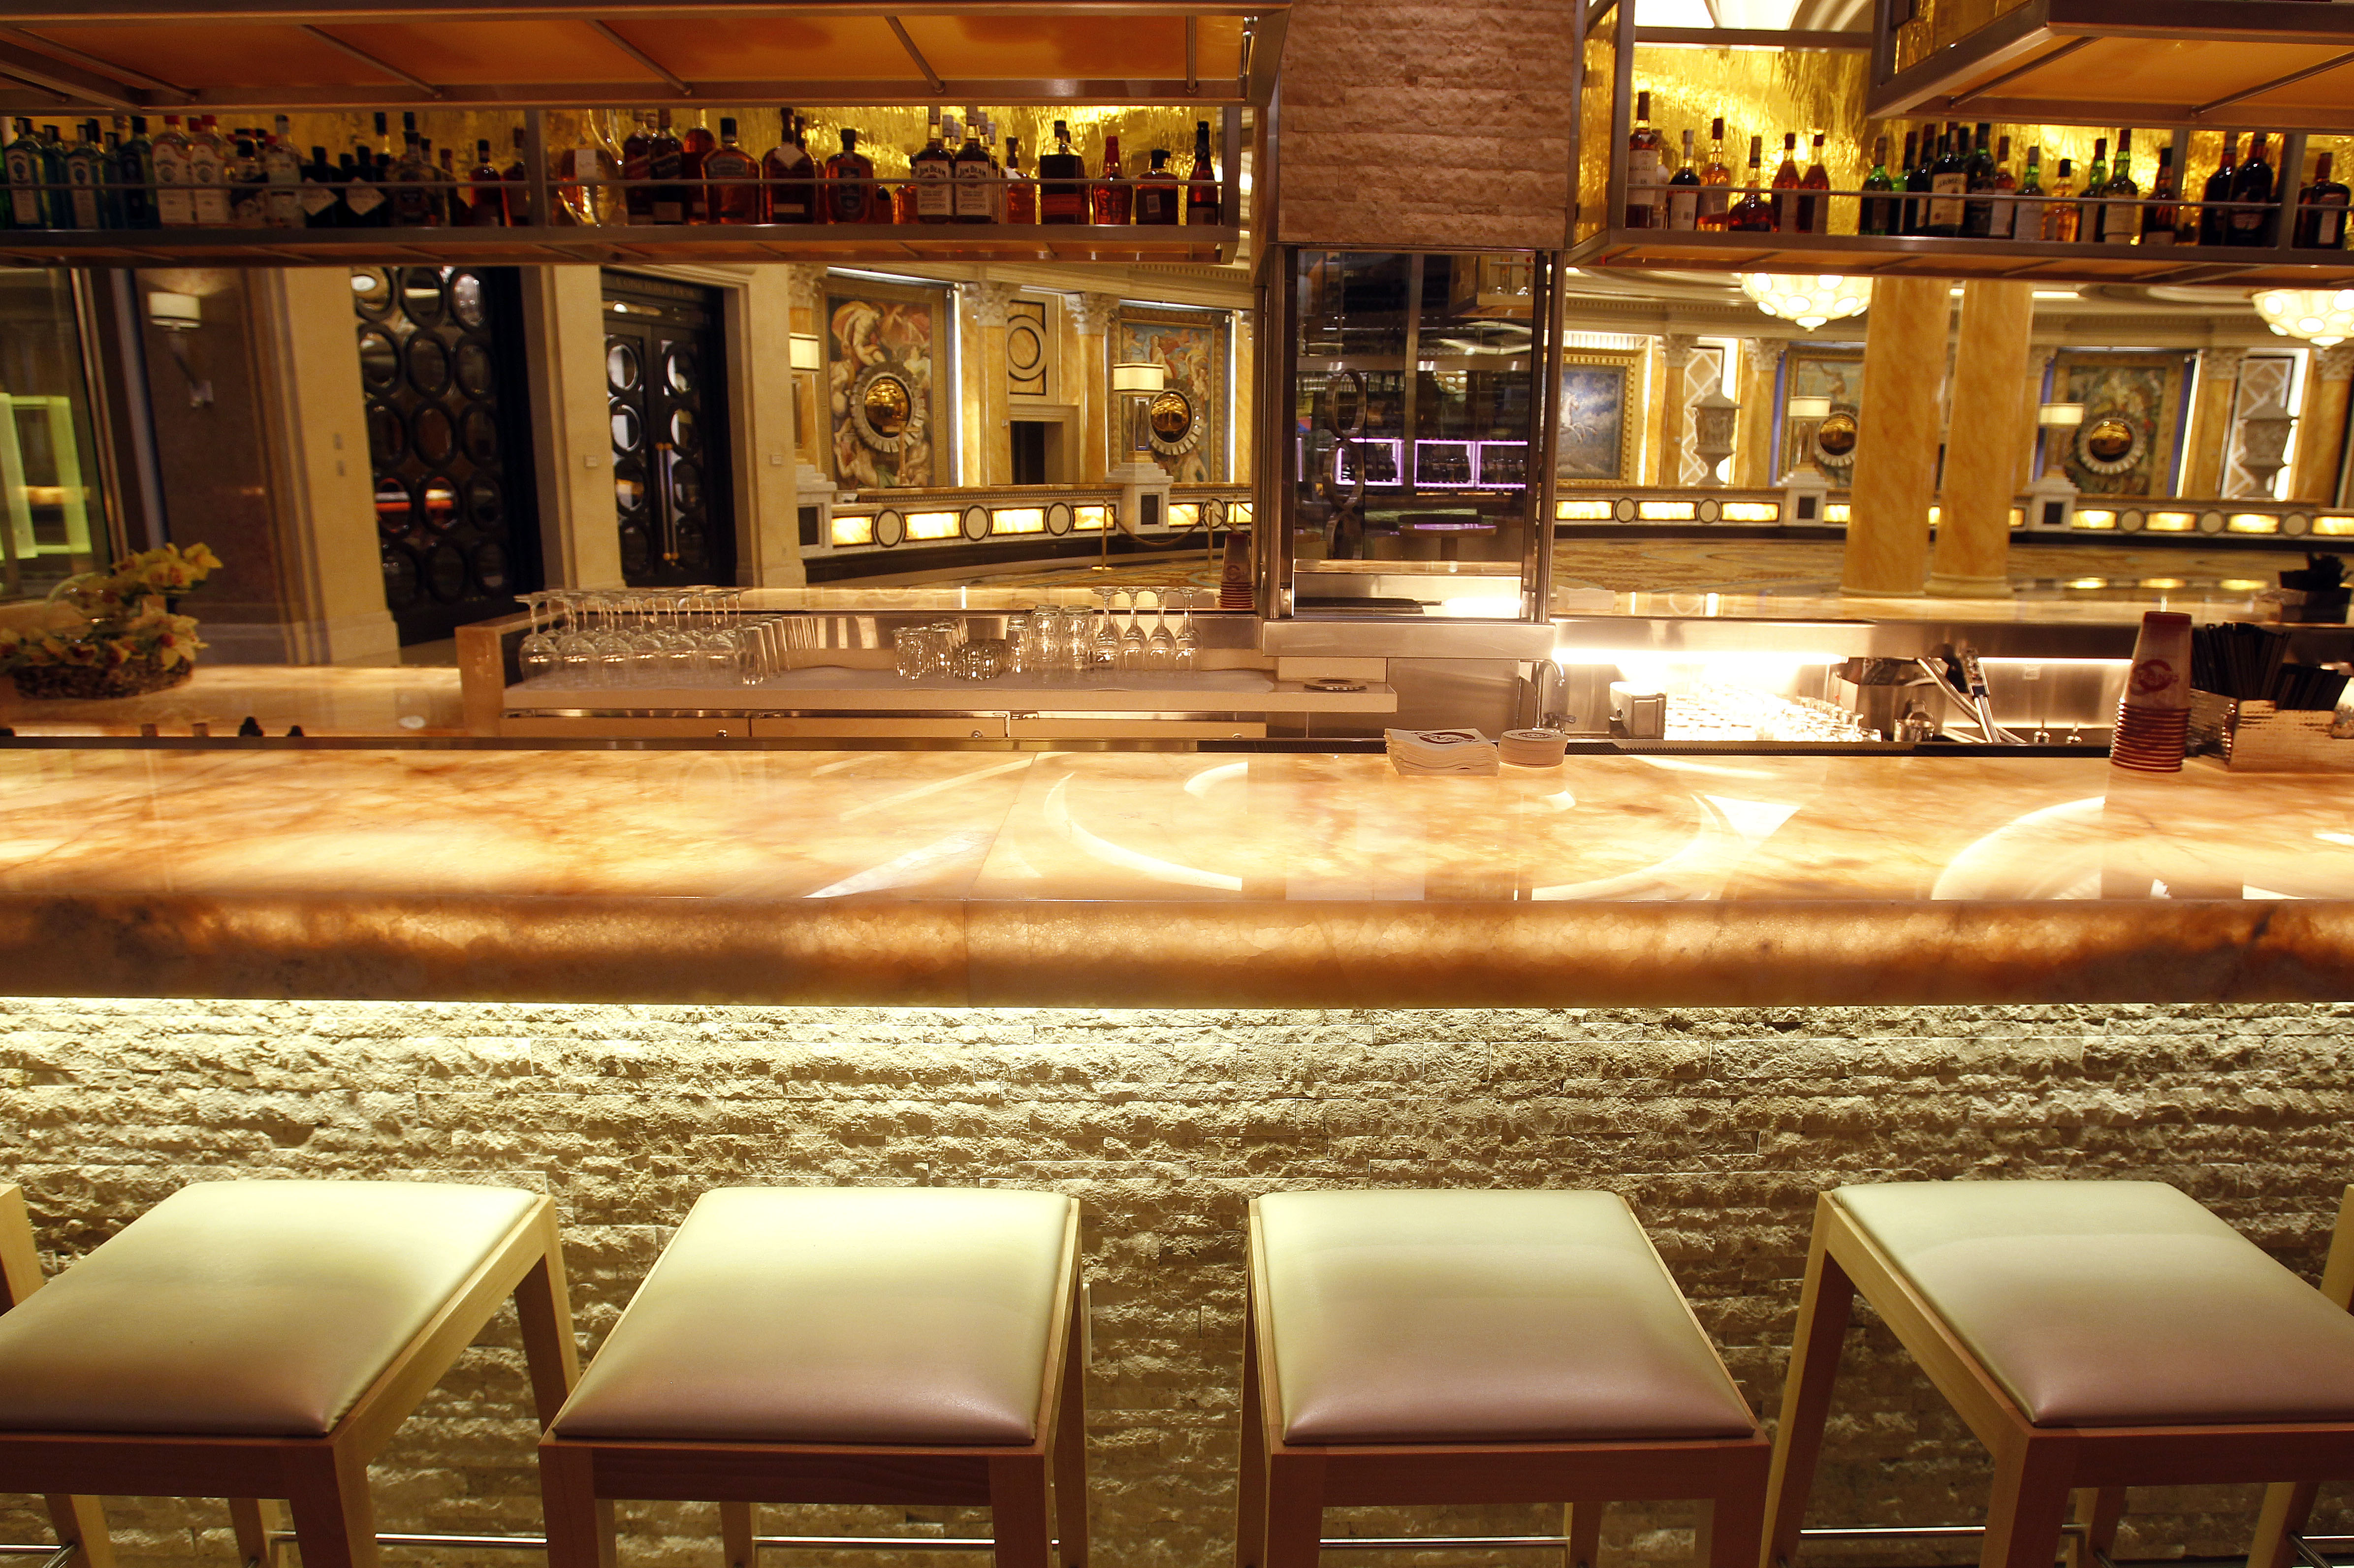 Central bar gayot 39 s blog - Picture of bar ...